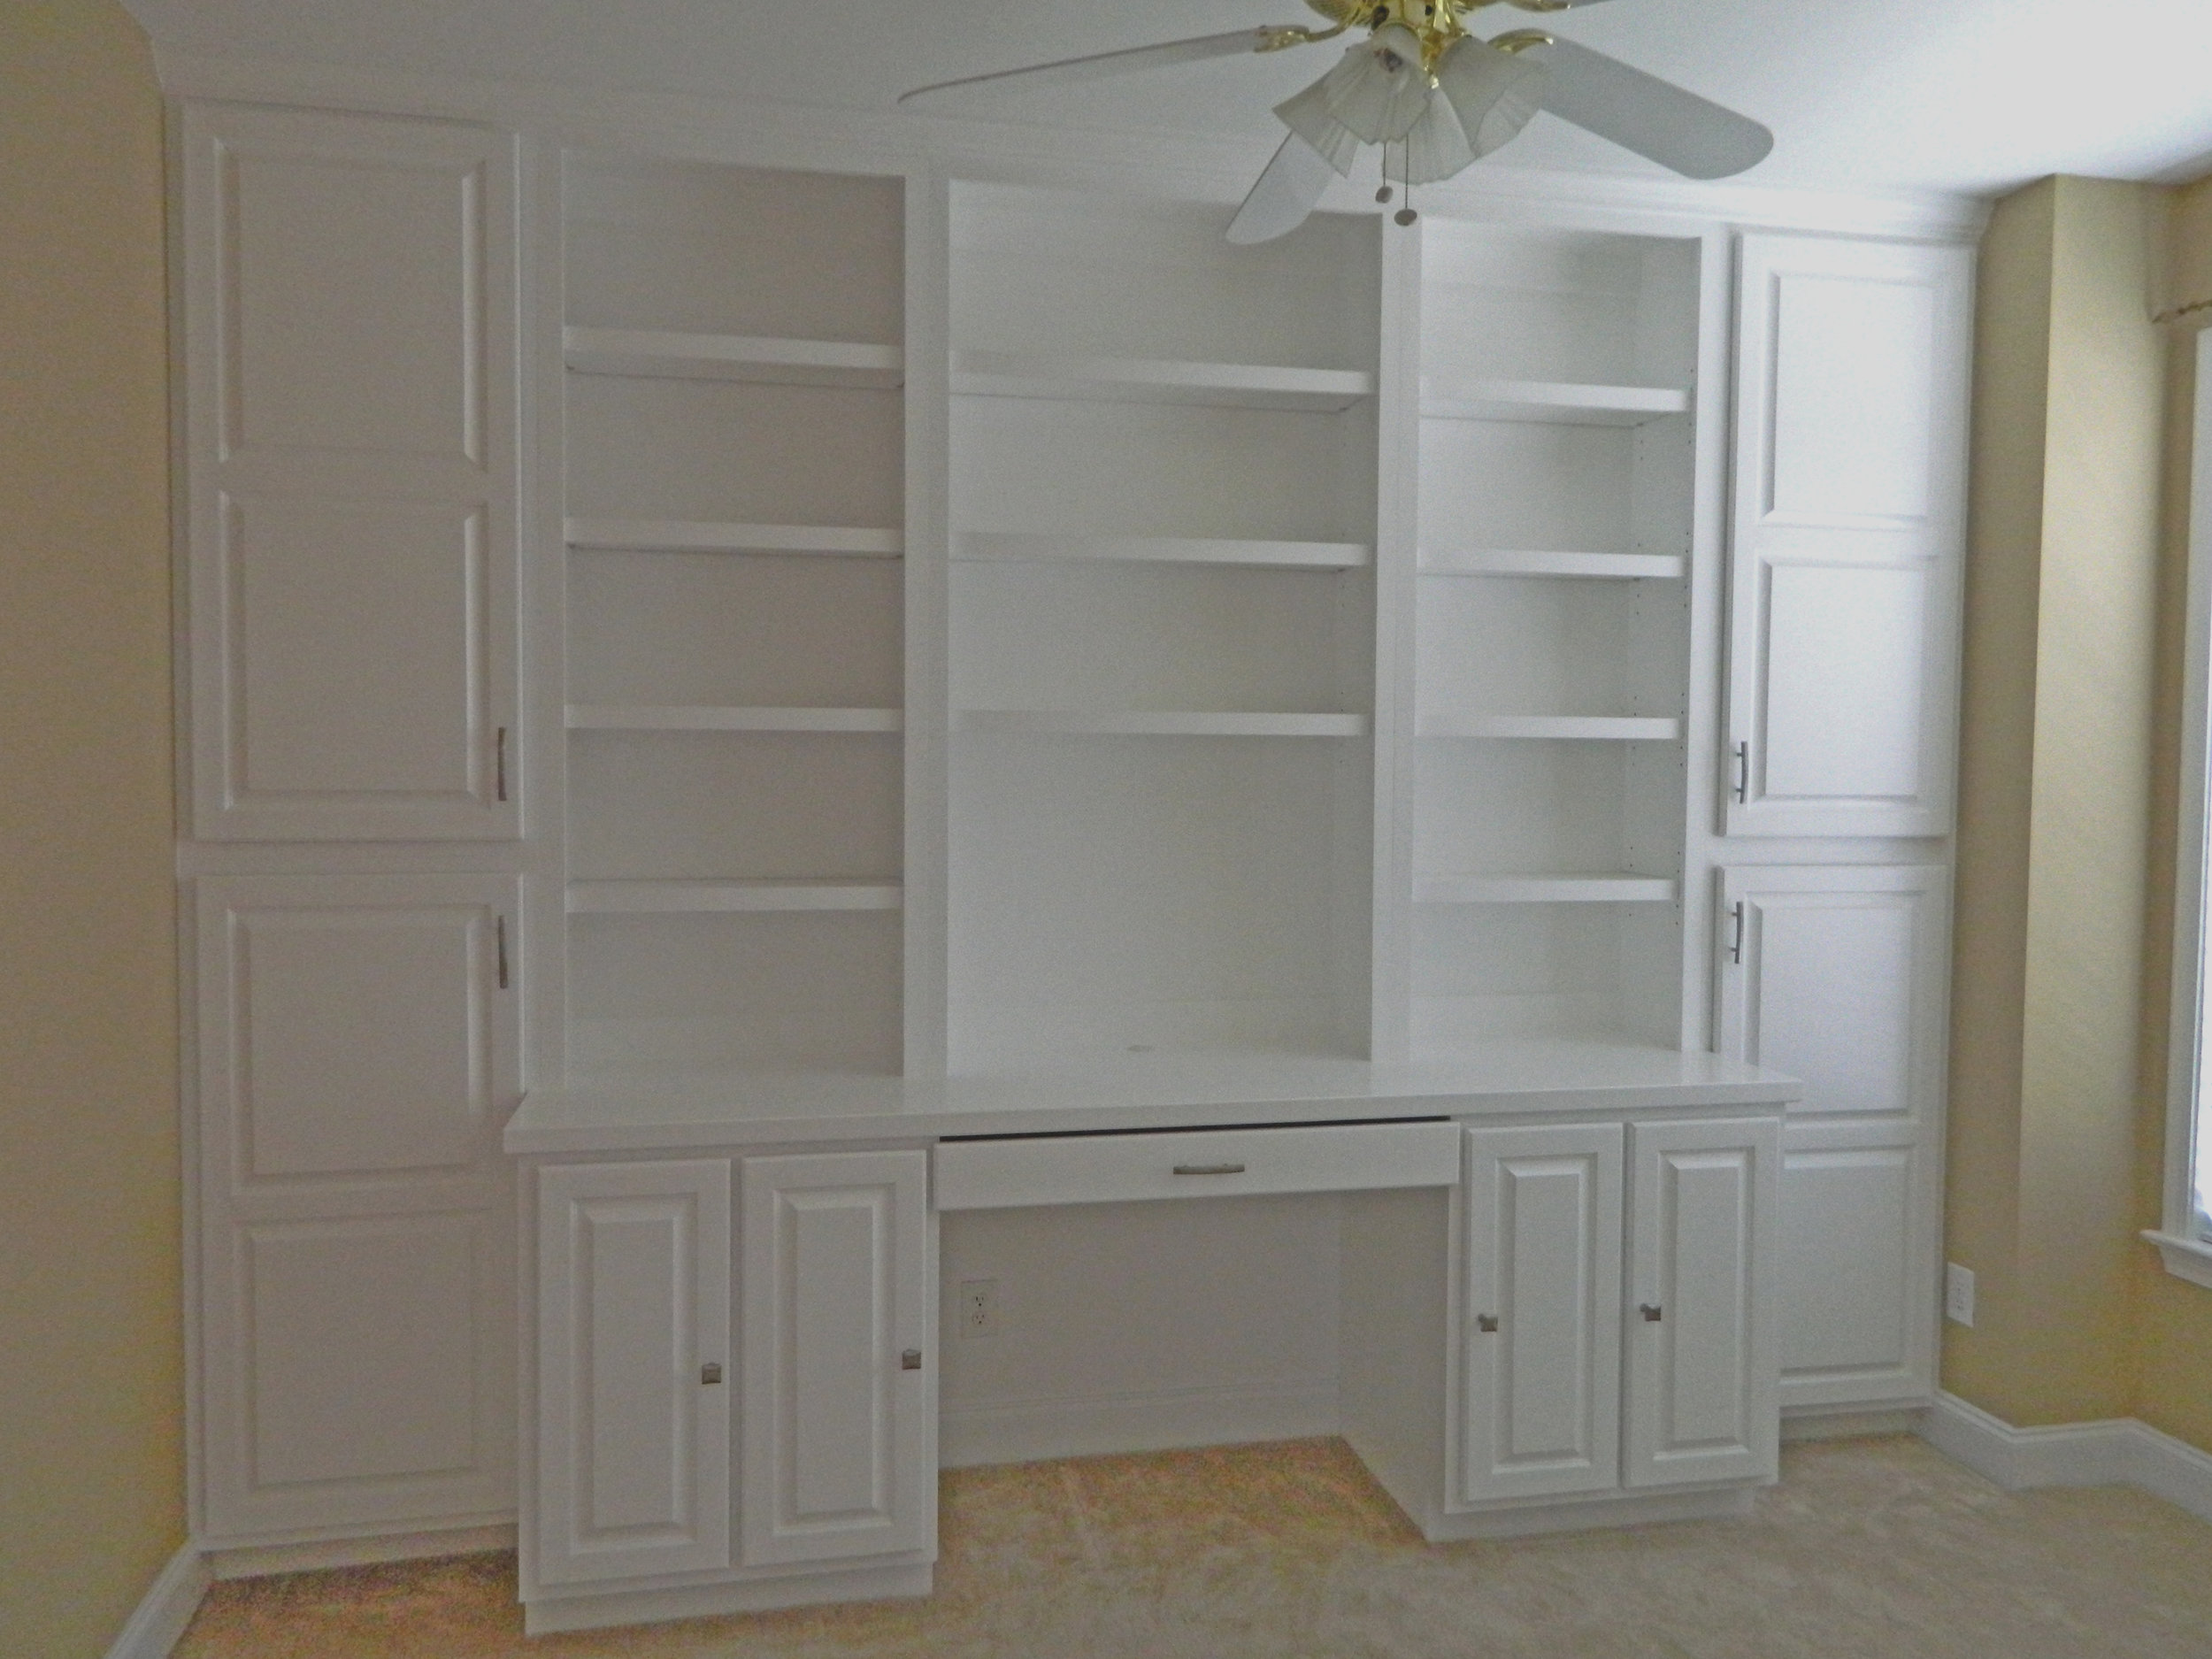 Custom Desk with Raised Panel Doors, Keyboard Pullout, and Painted Countertop